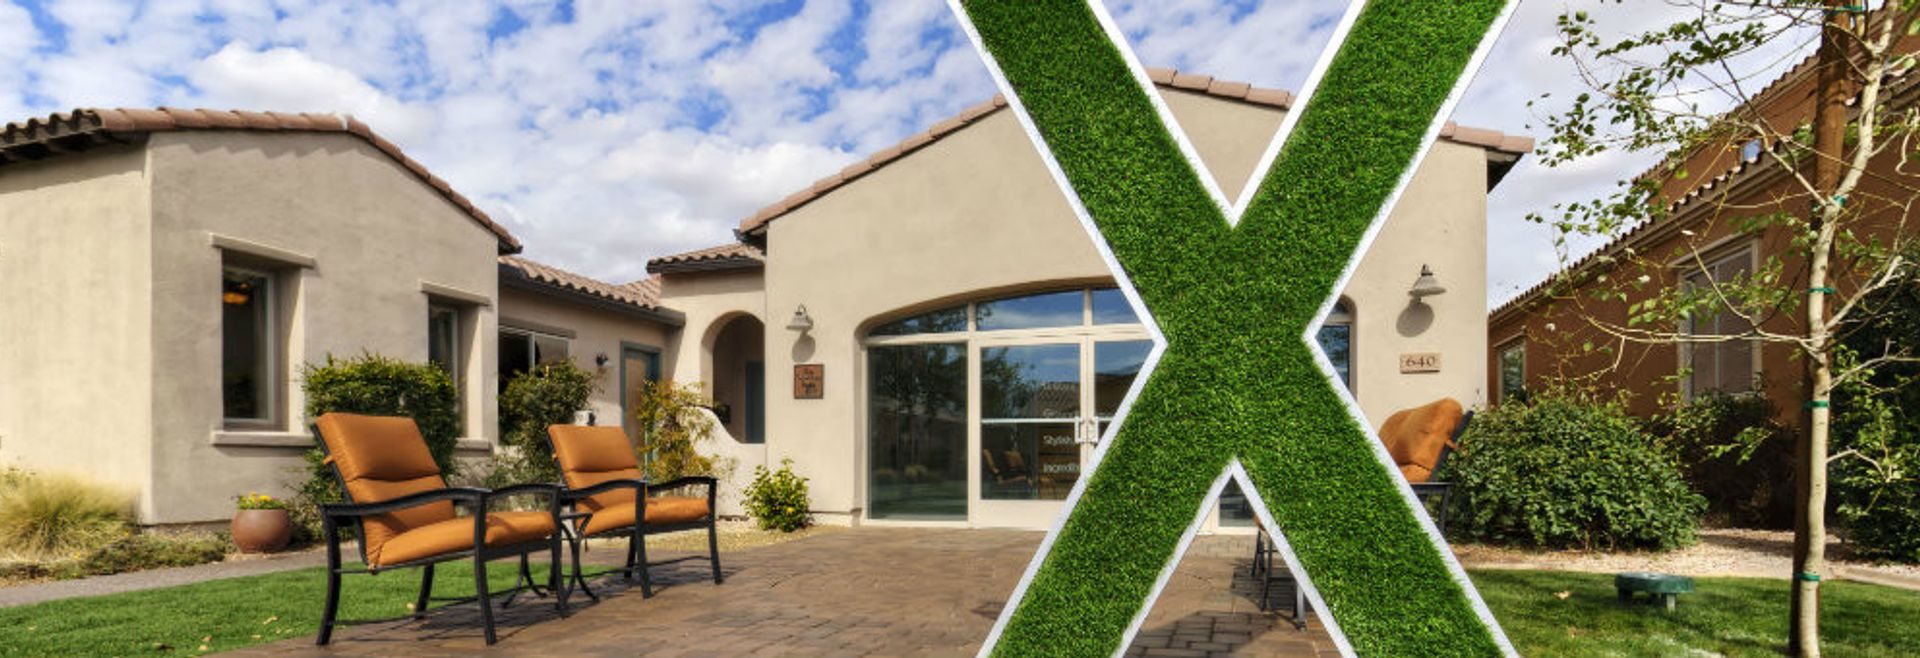 Home exterior with an X made of grass